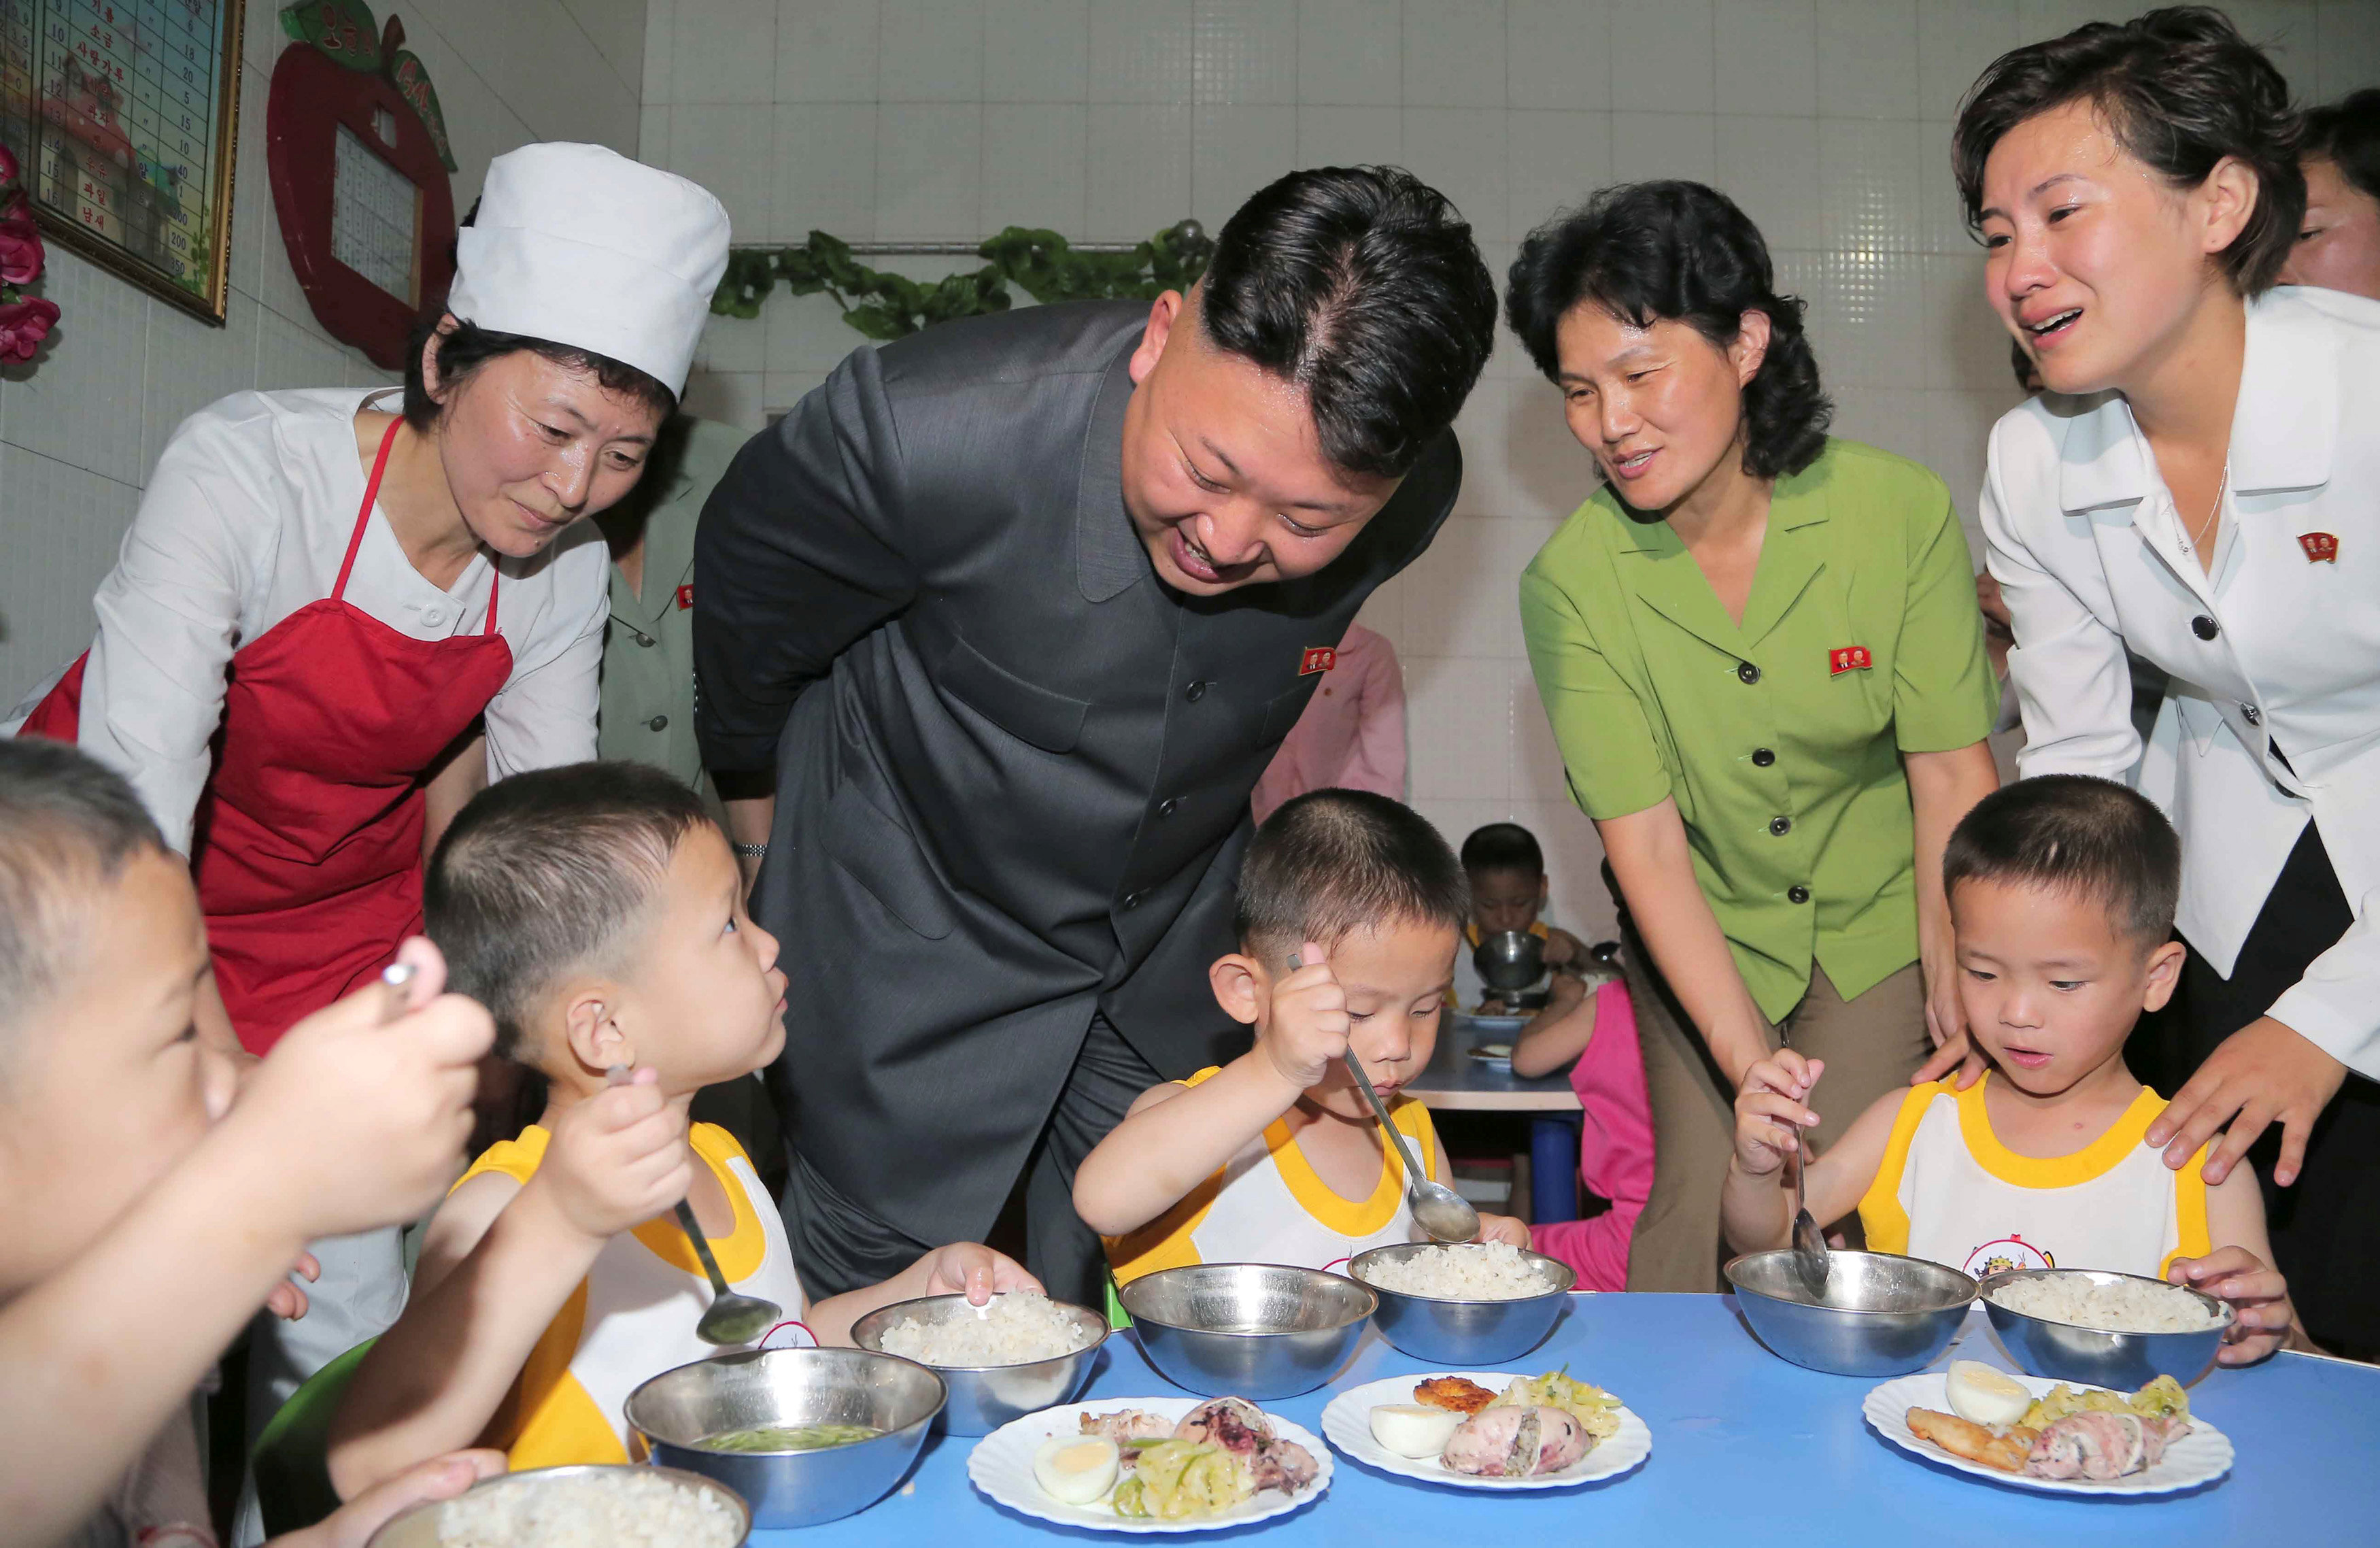 North Korean leader Kim Jong Un smiles as children eat during his visit to the Pyongyang Orphanage on International Children's Day in this undated photo released by North Korea's Korean Central News Agency (KCNA) in Pyongyang